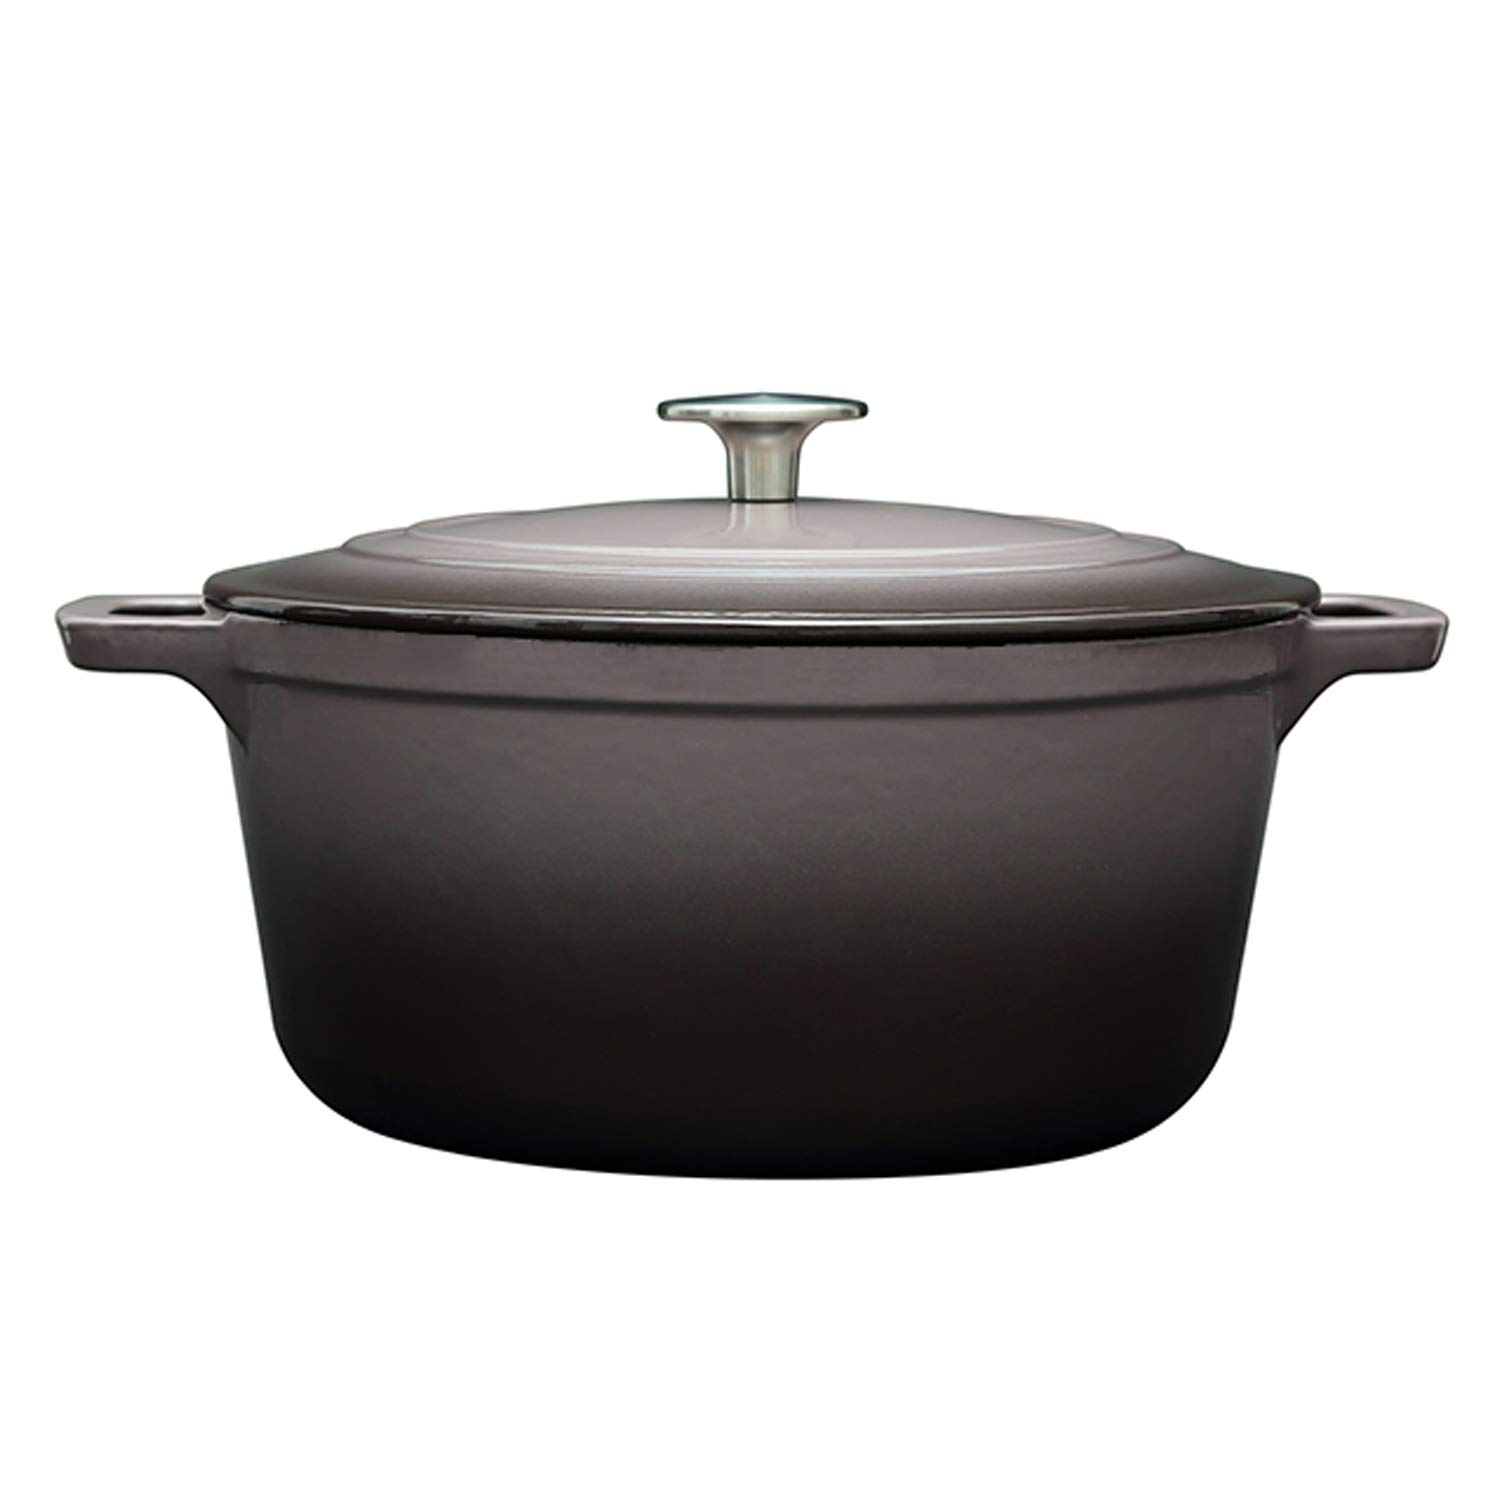 Enameled Cast Iron Dutch Oven, DEALLINK Classic Enamel Dutch Oven Ceramic Coated Cookware French Oven with Self Basting Lid (Purple-Gray, 4.7QT)